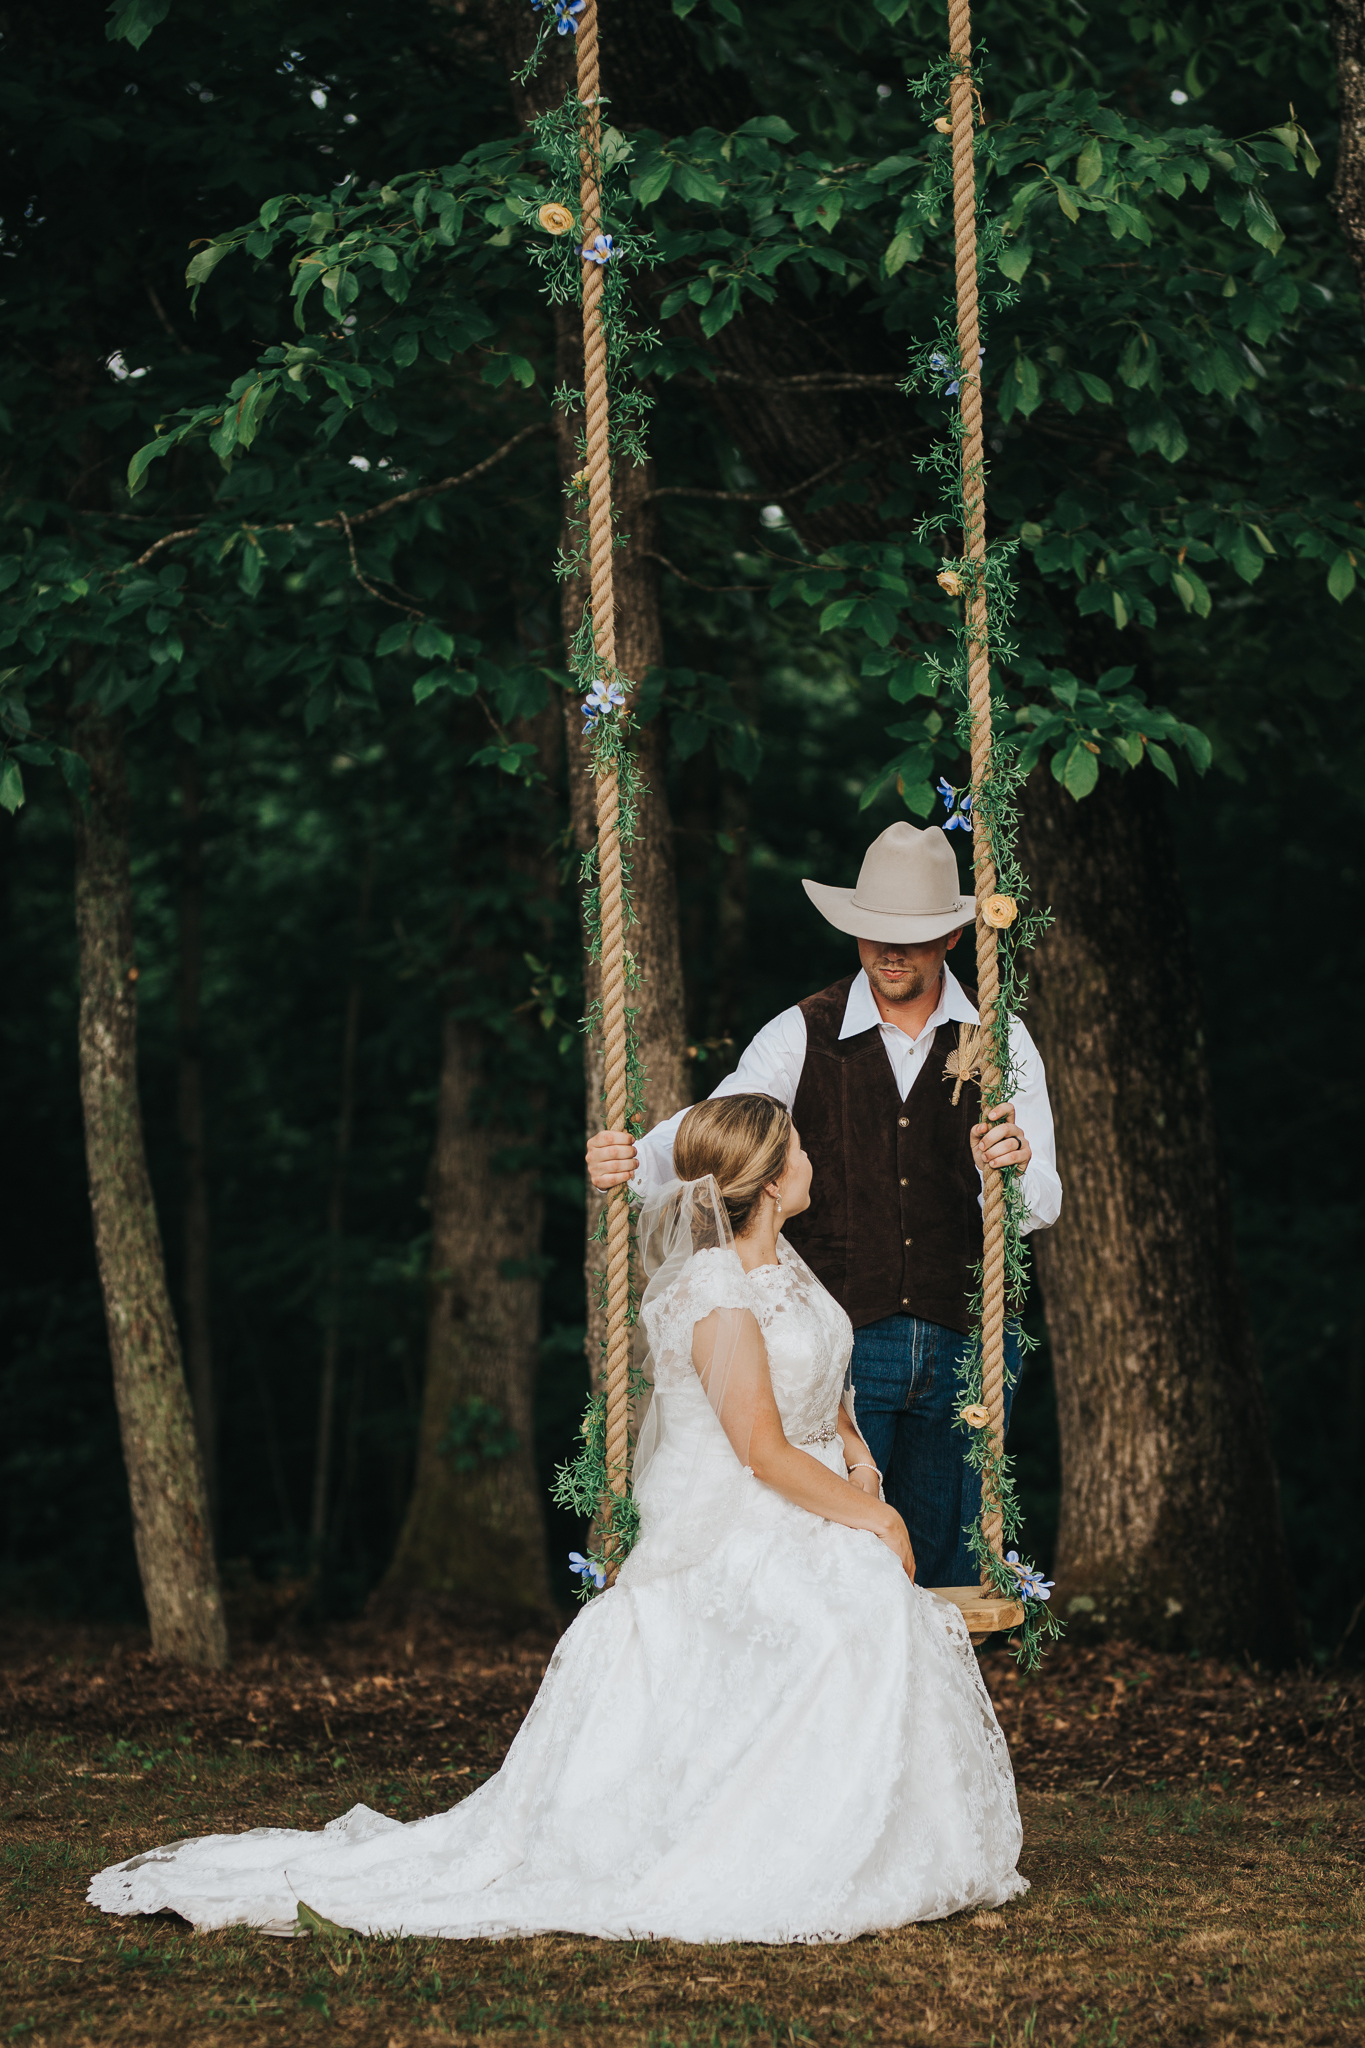 0065 Ariana Jordan Photo - Red River Gorge Wedding Photographer 6317.jpg